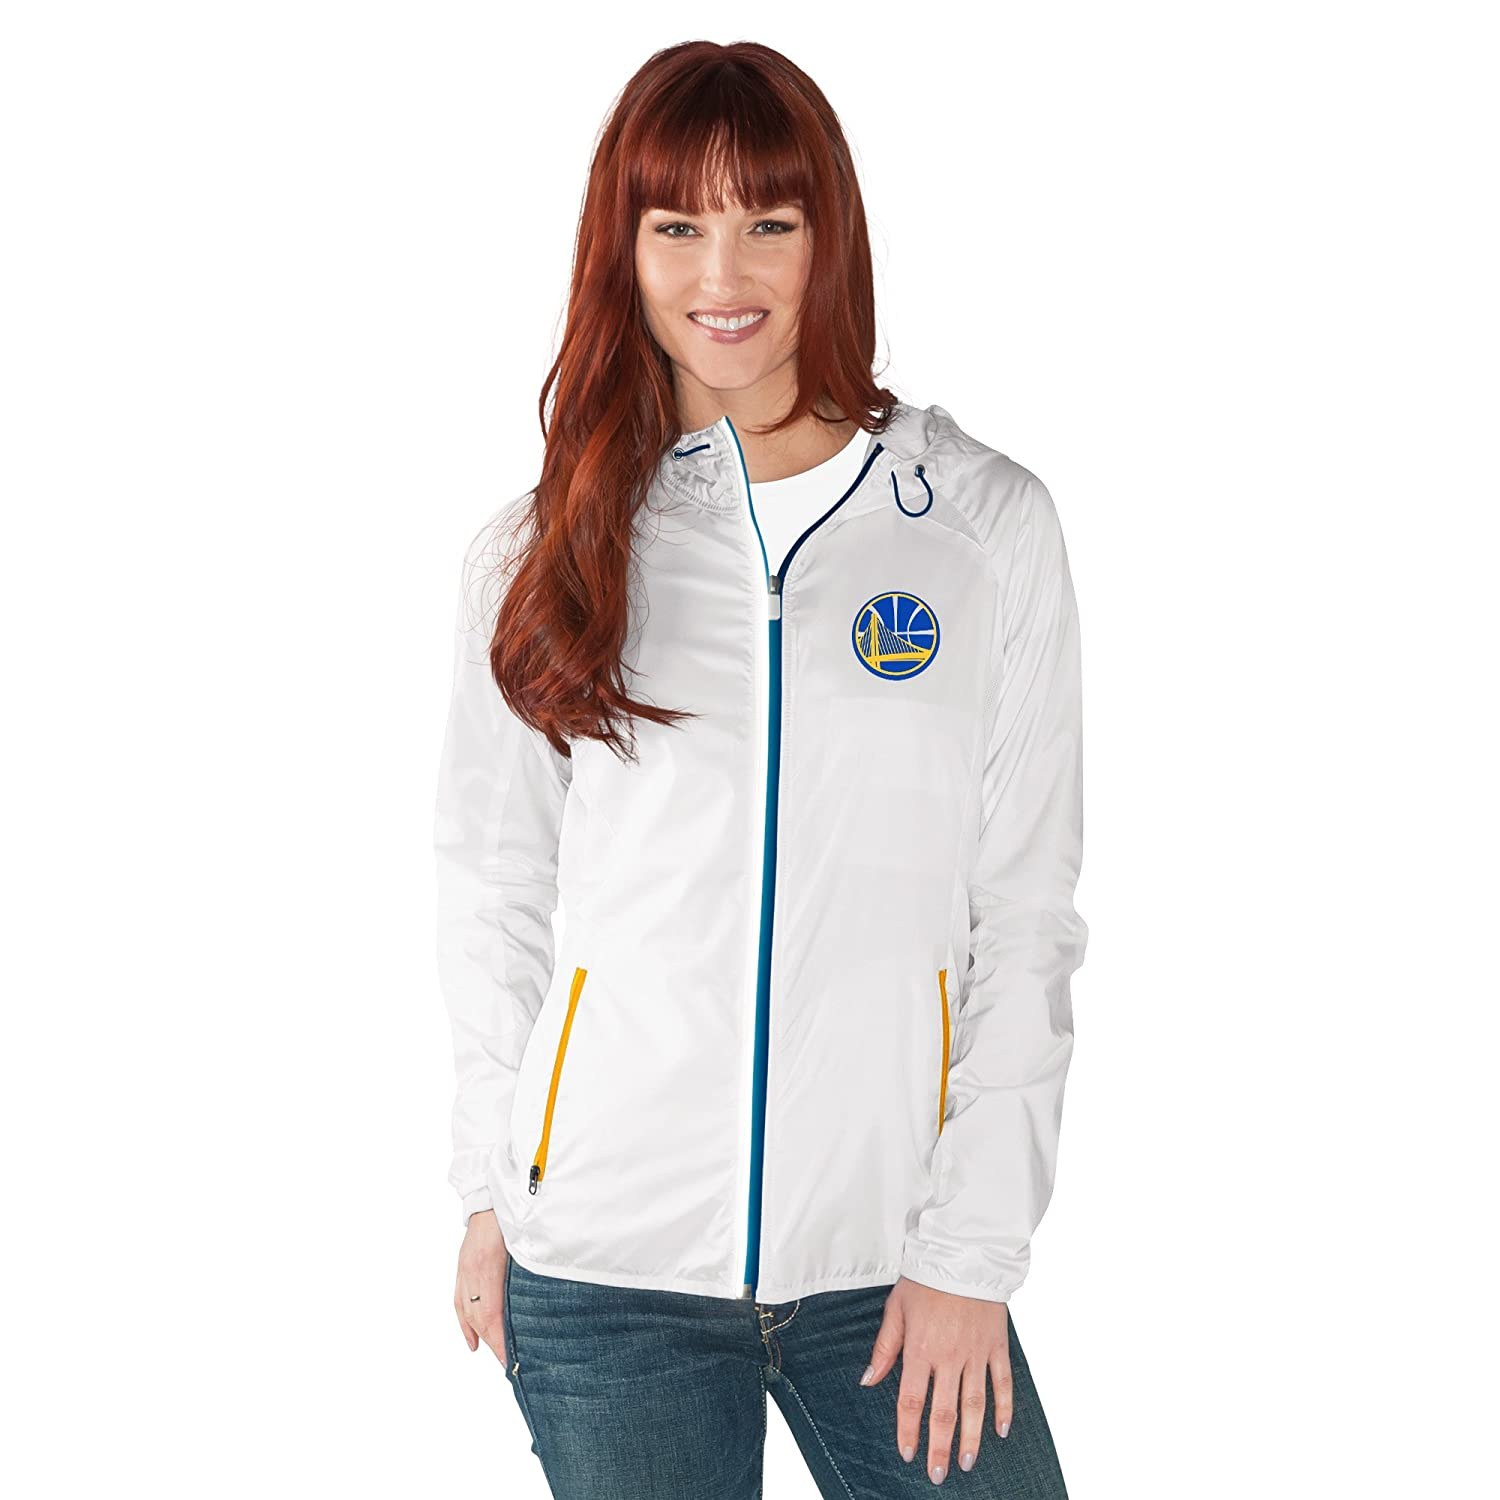 (Golden State Warriors, Large, White) - NBA Women's Spring Training Light Weight Full Zip Jacket   B01ND0USCE